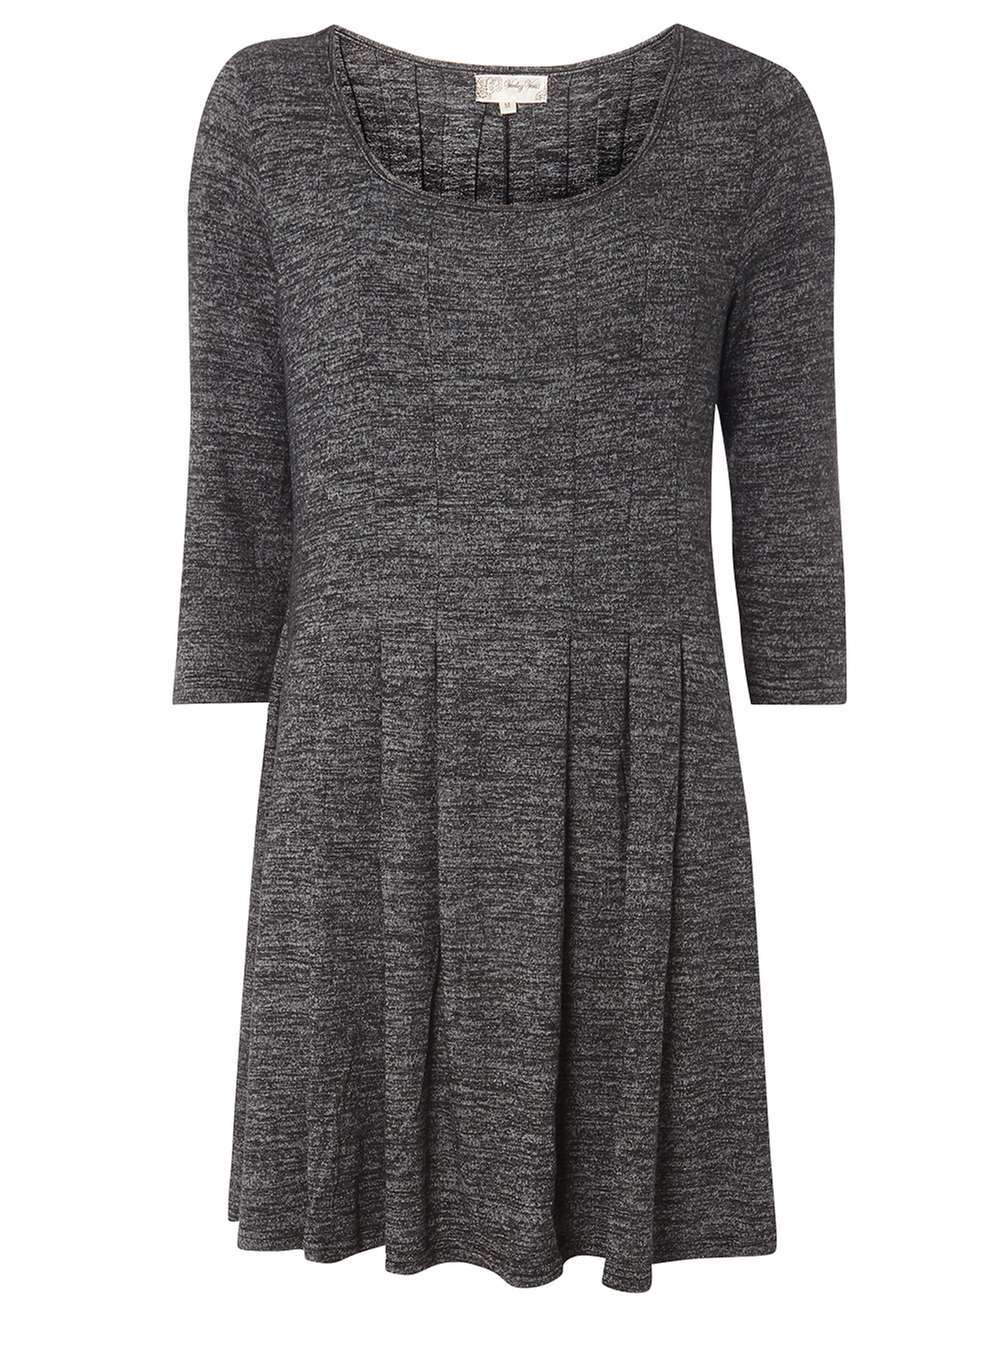 Womens **Voulez Vouz Charcoal 3/4 Sleeve Knitted Dress Grey - length: mid thigh; neckline: round neck; pattern: plain; predominant colour: charcoal; occasions: casual; fit: fitted at waist & bust; style: fit & flare; fibres: polyester/polyamide - stretch; hip detail: soft pleats at hip/draping at hip/flared at hip; sleeve length: 3/4 length; sleeve style: standard; pattern type: fabric; texture group: jersey - stretchy/drapey; wardrobe: basic; season: a/w 2016